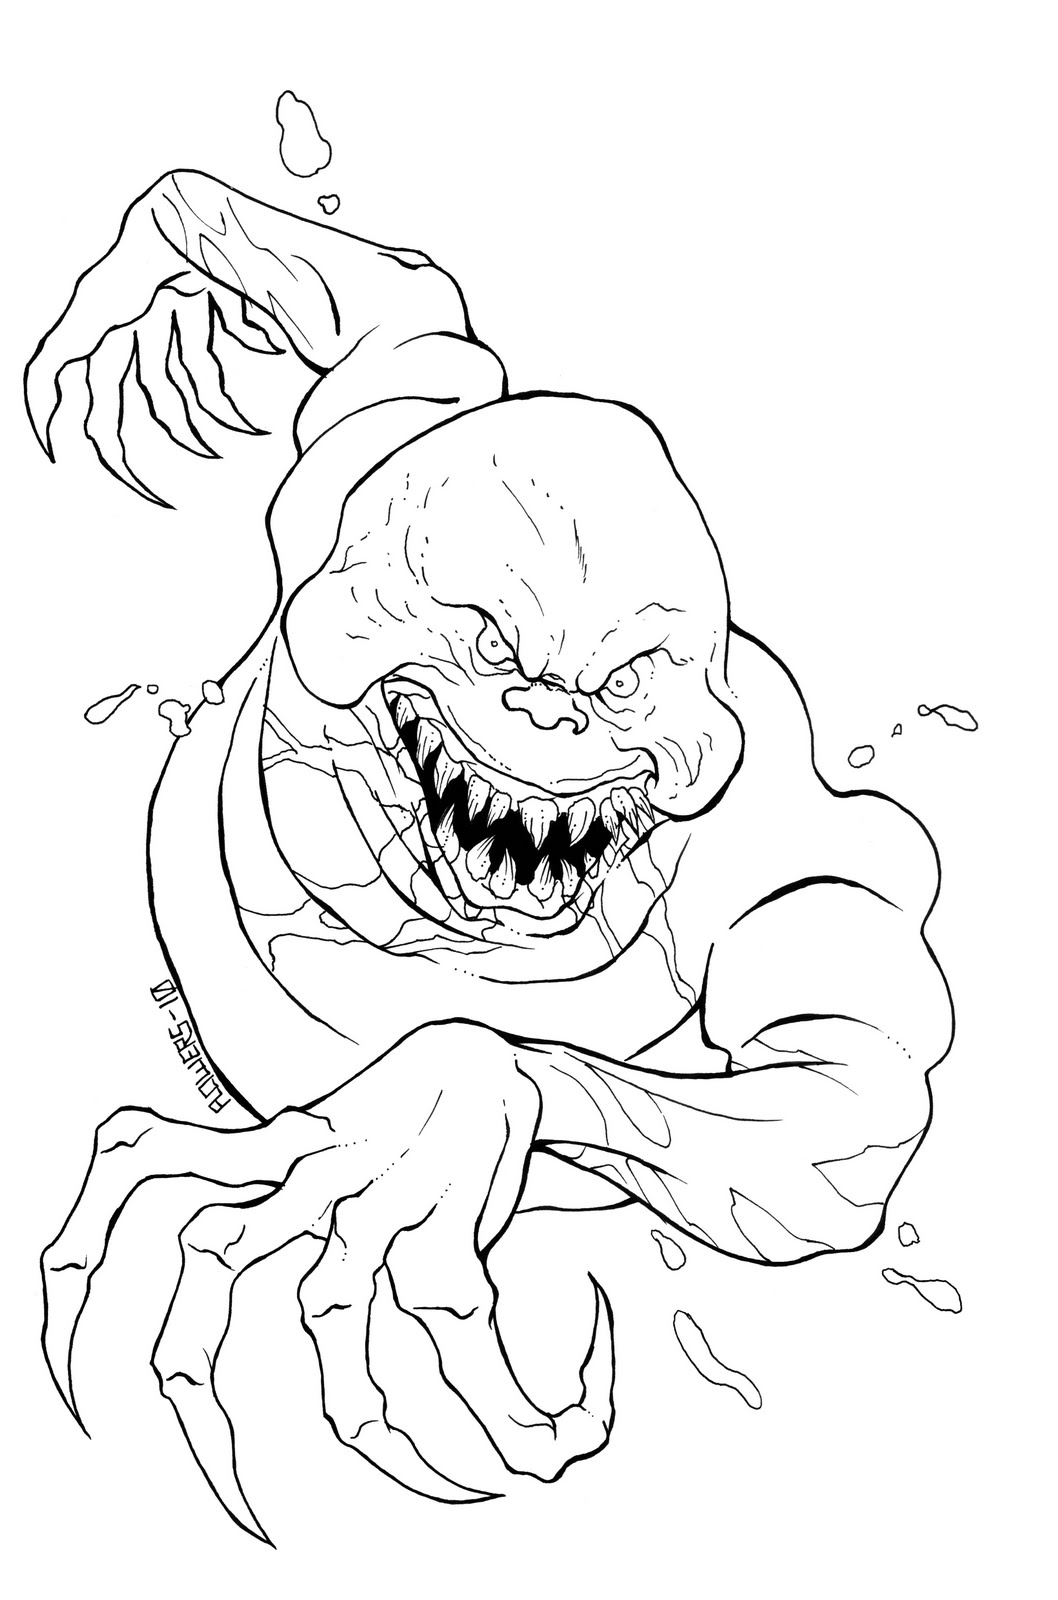 coloring pages halloween scary halloween scary pumpkin halloween adult coloring pages coloring scary pages halloween